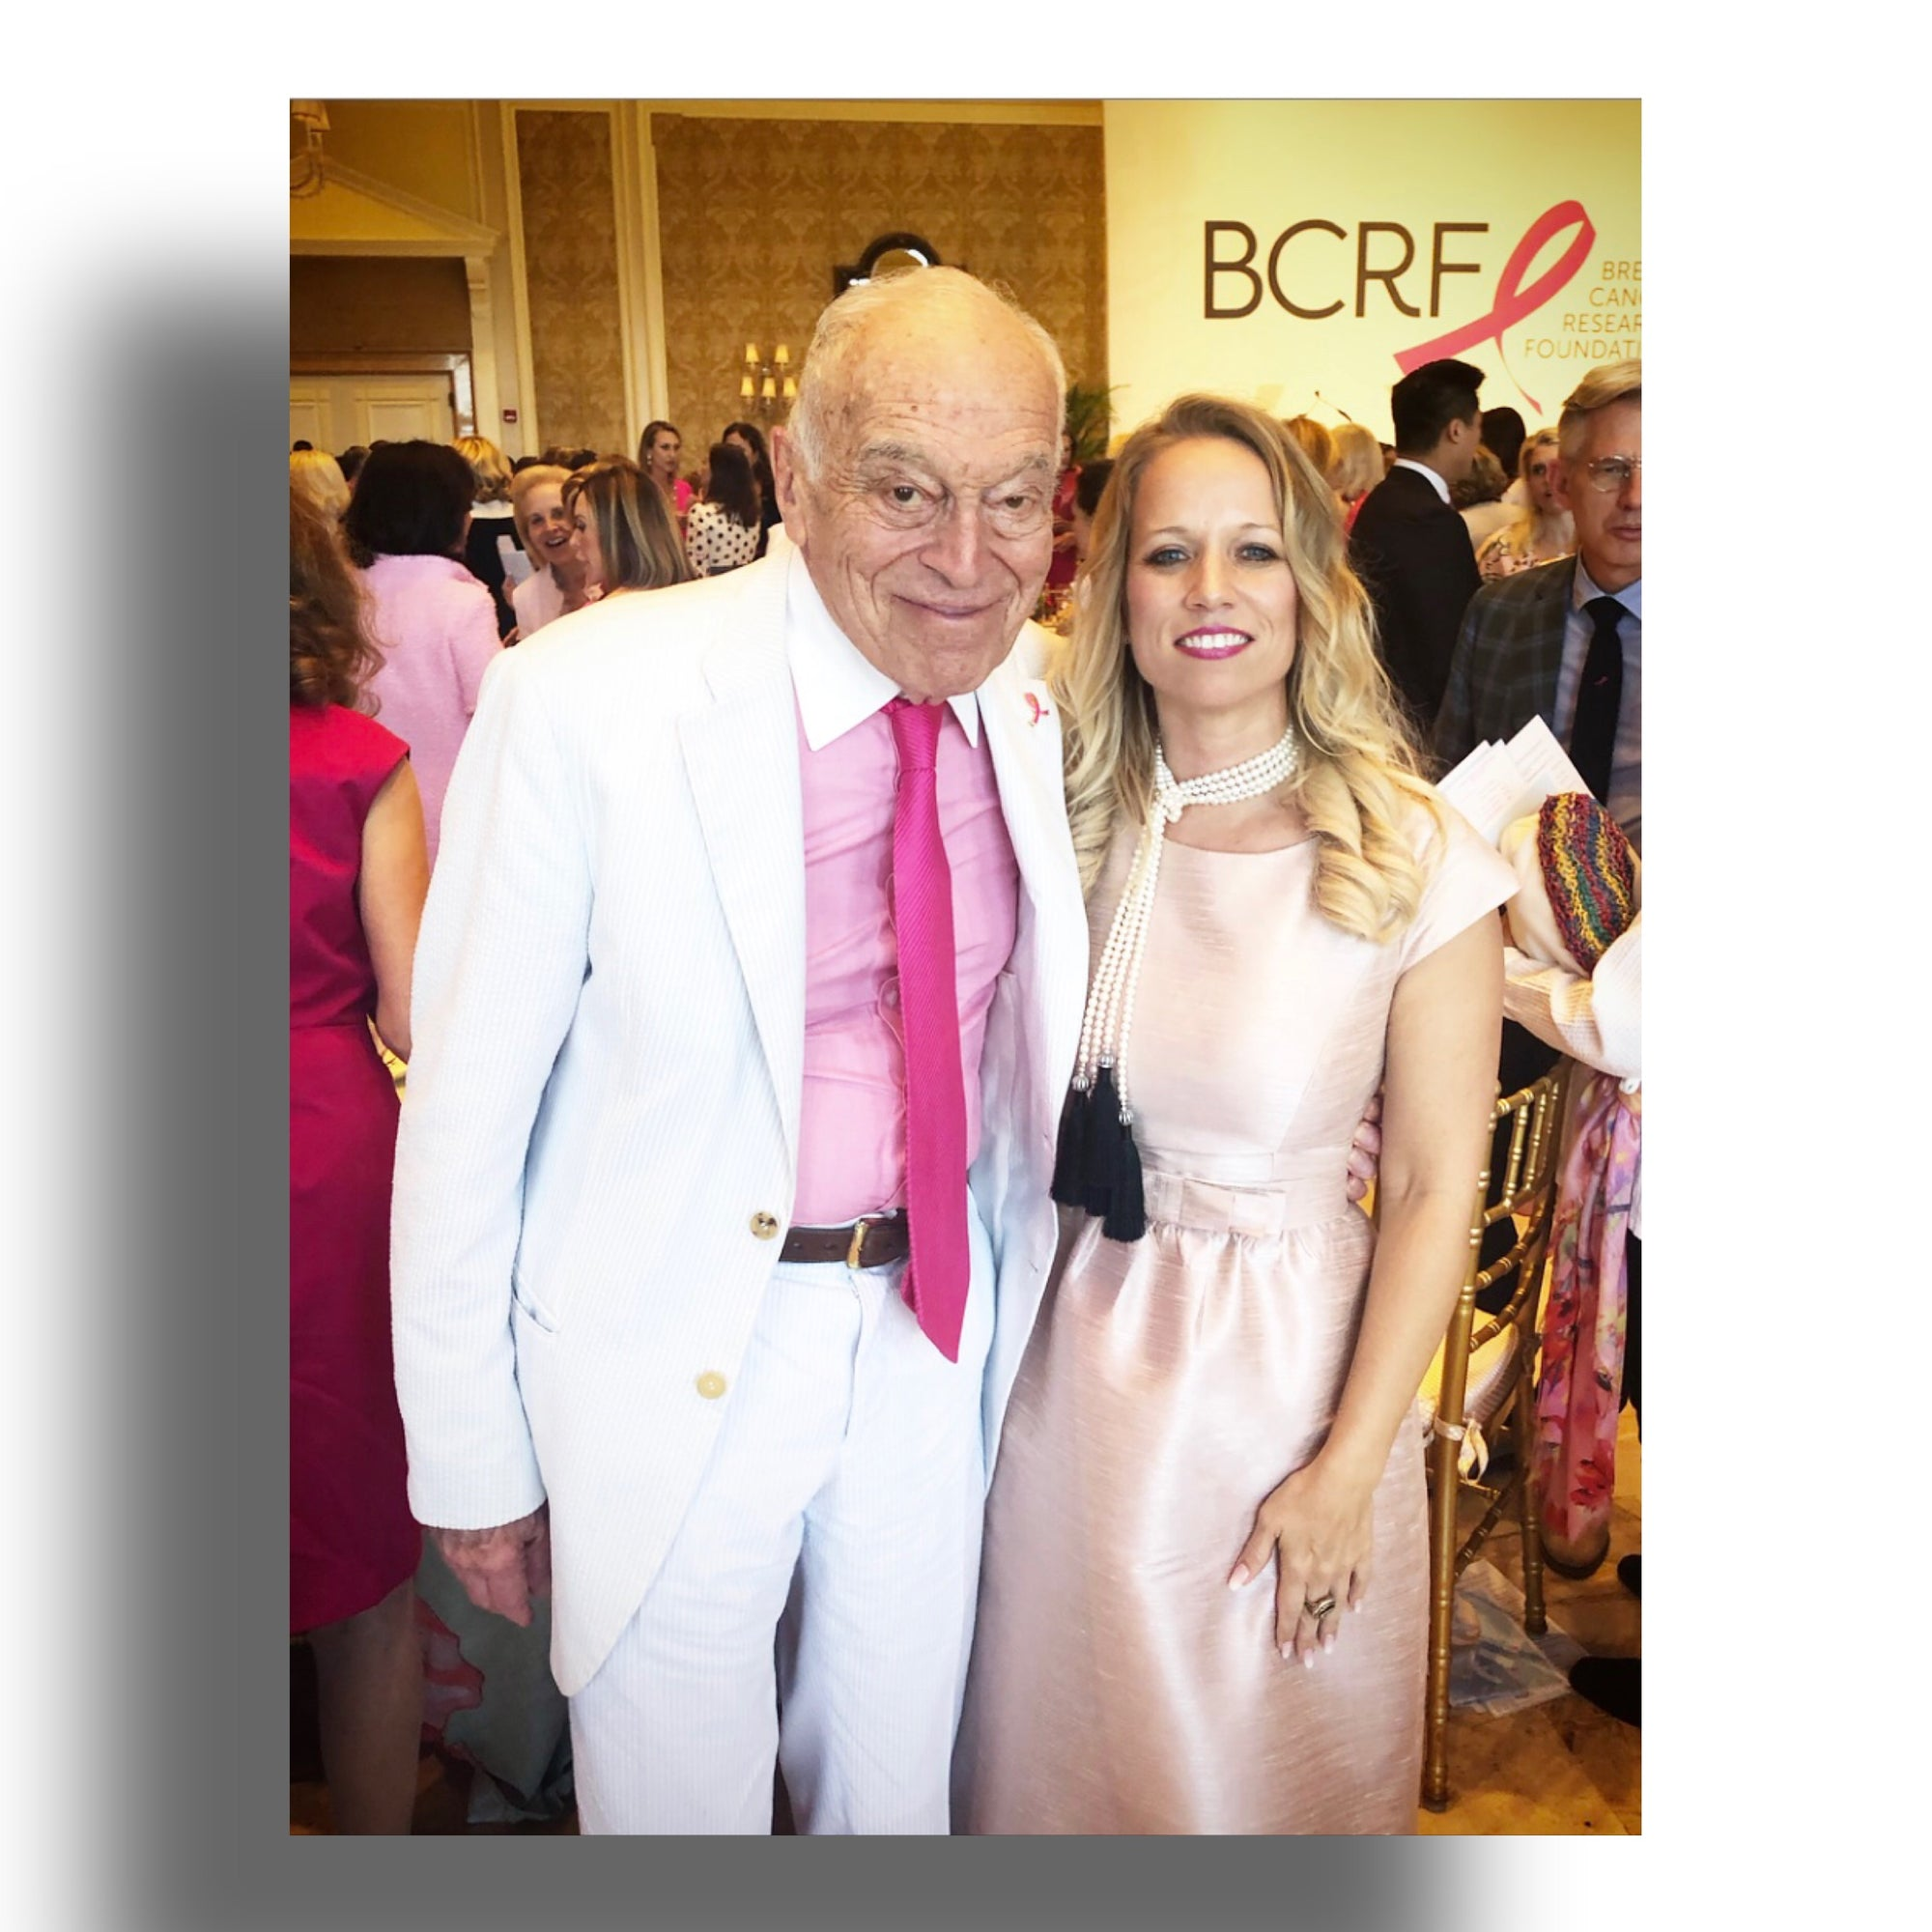 BCRF Neiman Marcus Leonard Lauder Estee Lauder Heather Matjasic 2019 Hot Pink Luncheon The Breakers Palm Beach Florida Fashion Show